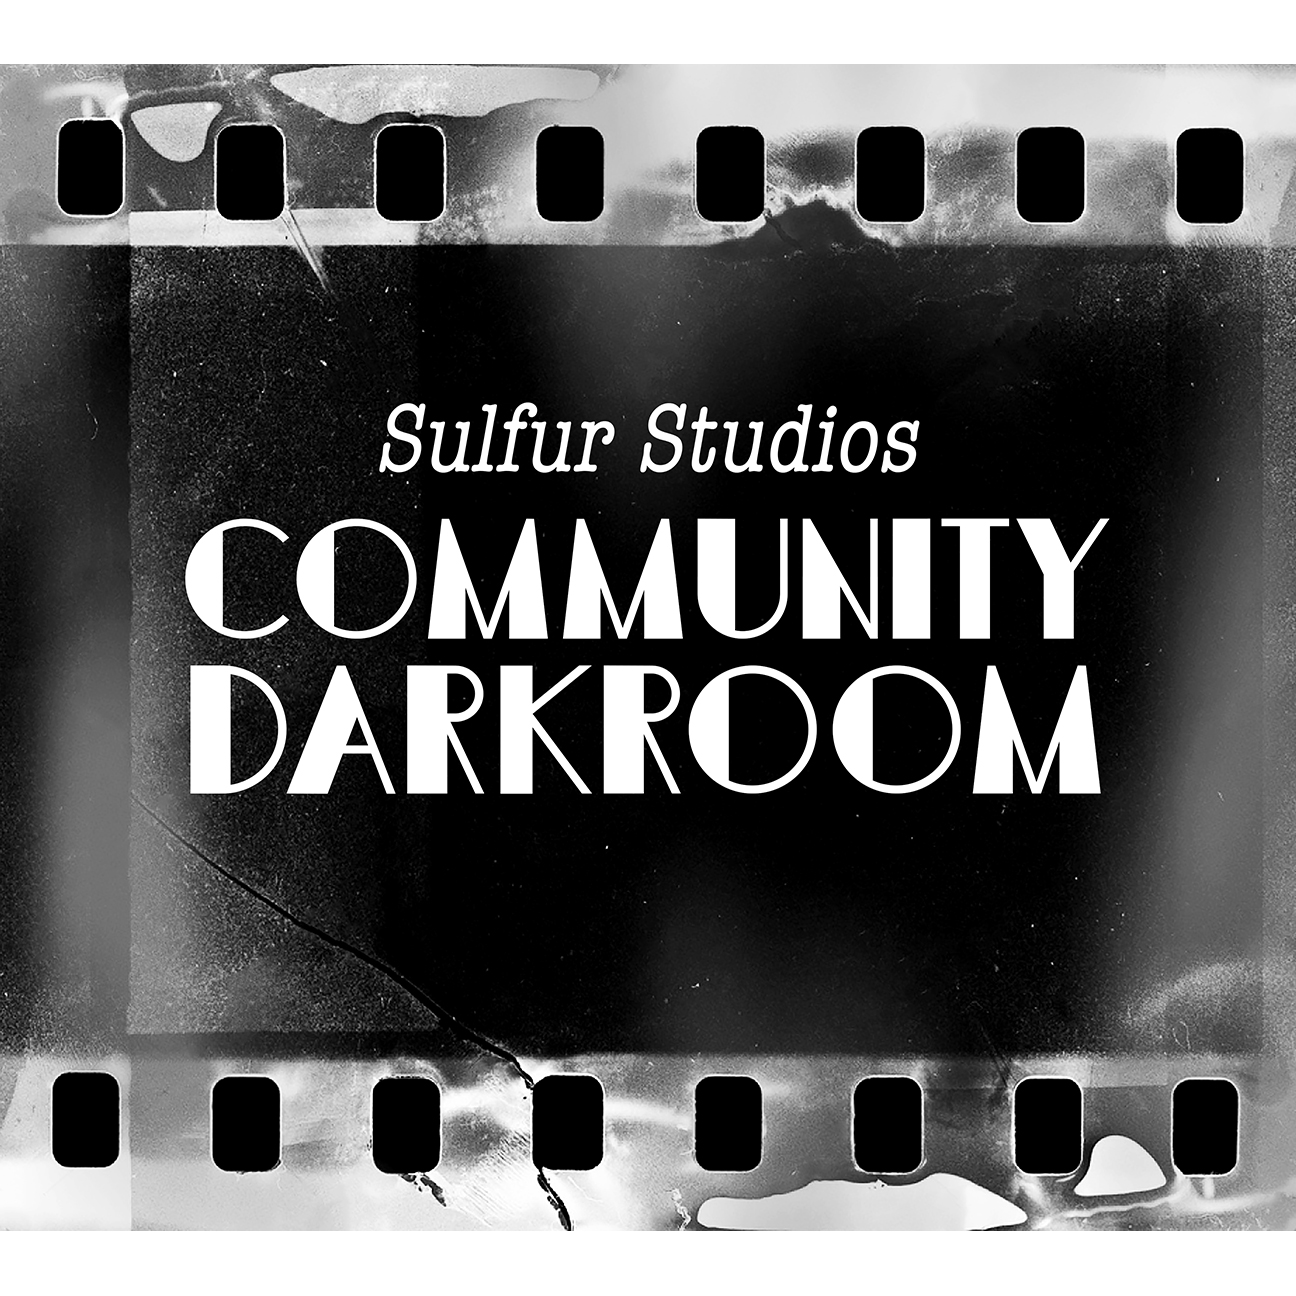 Community Darkroom - We now offer a film developing darkroom that may be used for black & white film developing, alternative processes and contact printing, including cyanotype, salt printing and platinum printing. Monthly memberships are available, as well as a variety of on-going classes. Also be sure to check out our monthly Photo Group Critique! (Held every 3rd Wednesday of the month, look on our calendar for the next critique)